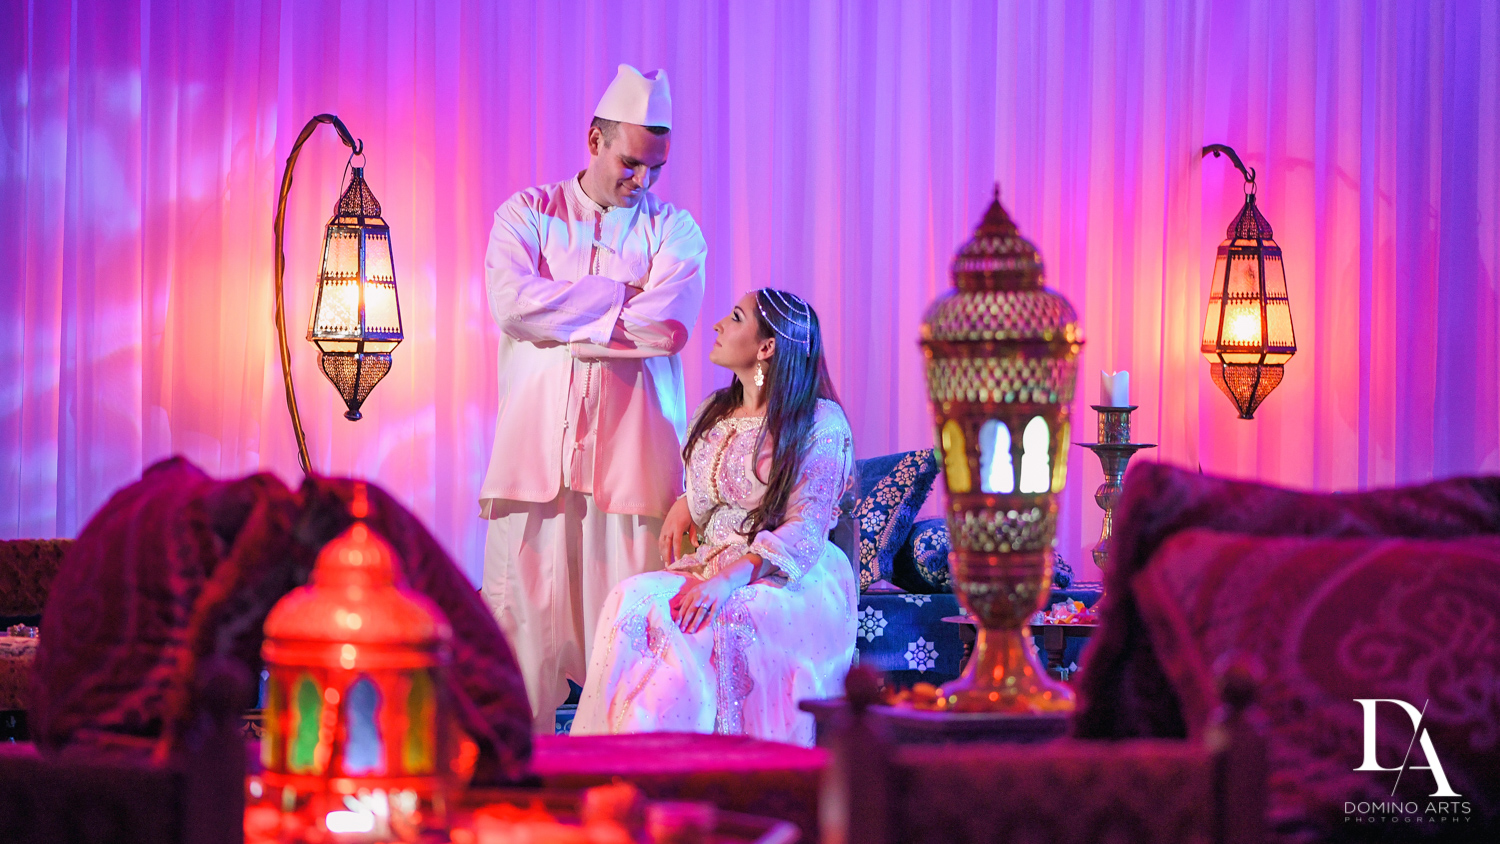 Couple and decor at Traditional Henna Party Photography at Lavan South Florida by Domino Arts